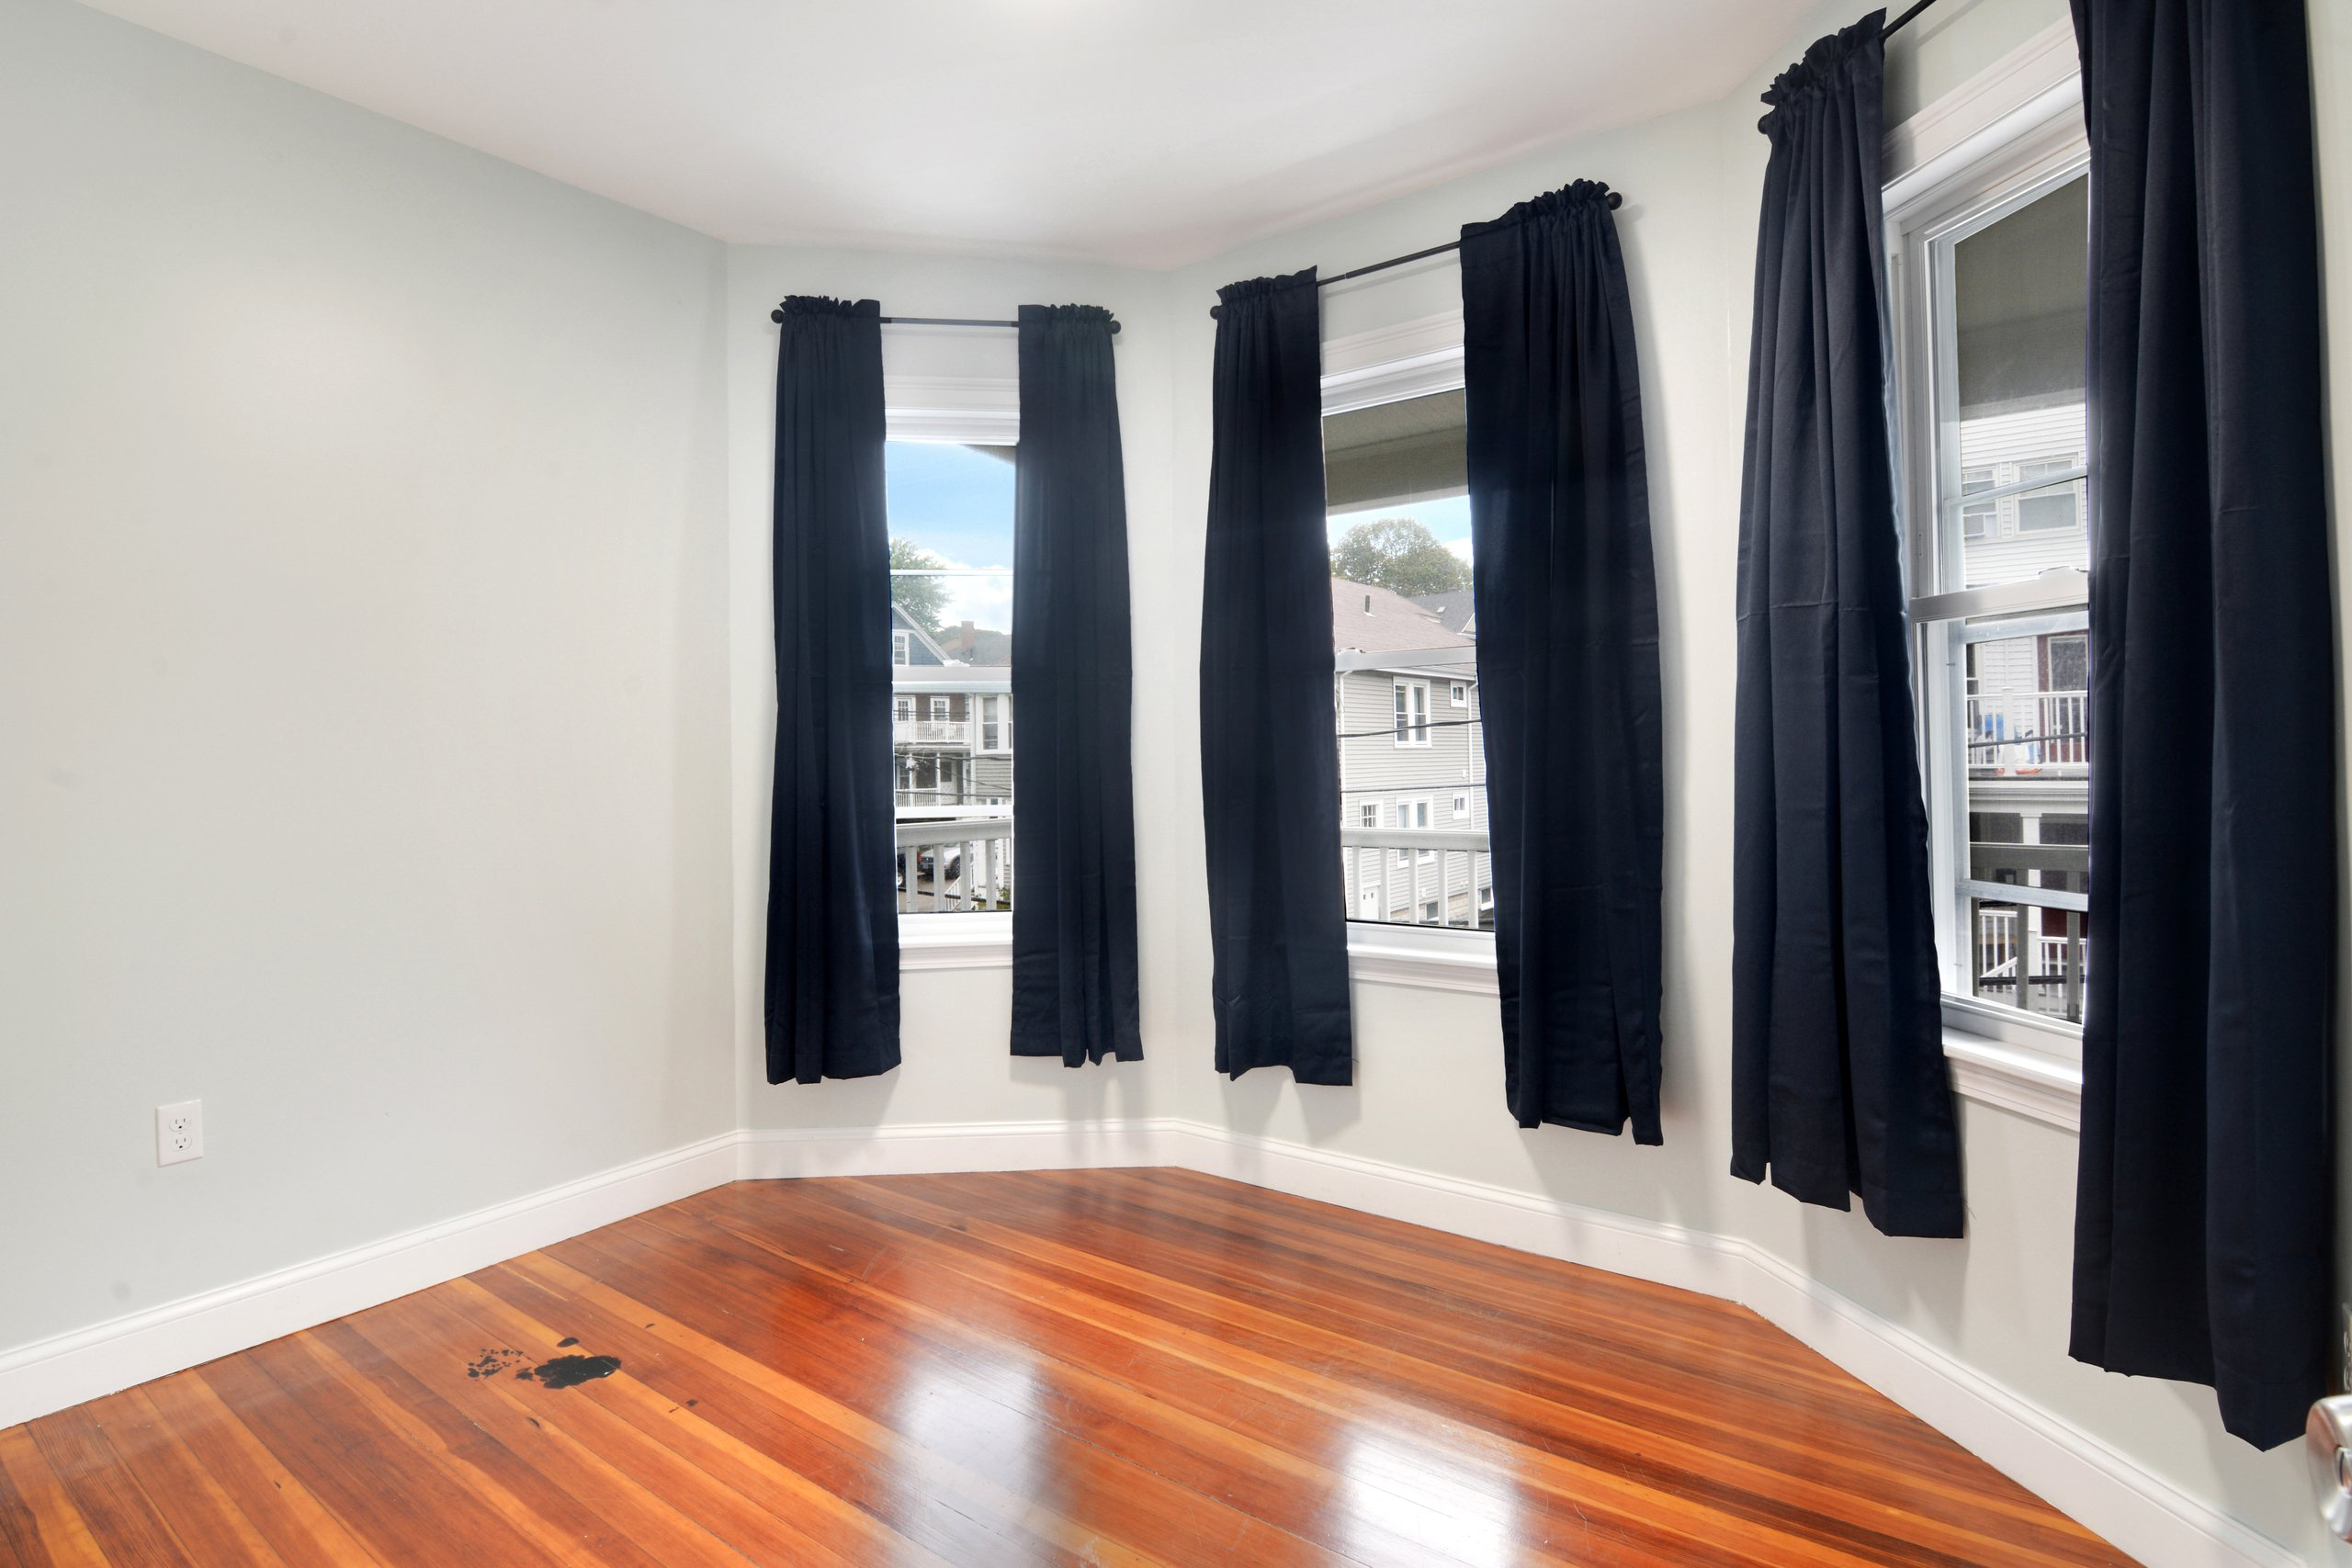 Photo of Queen Room C (can be furnished or unfurnished) room June Homes